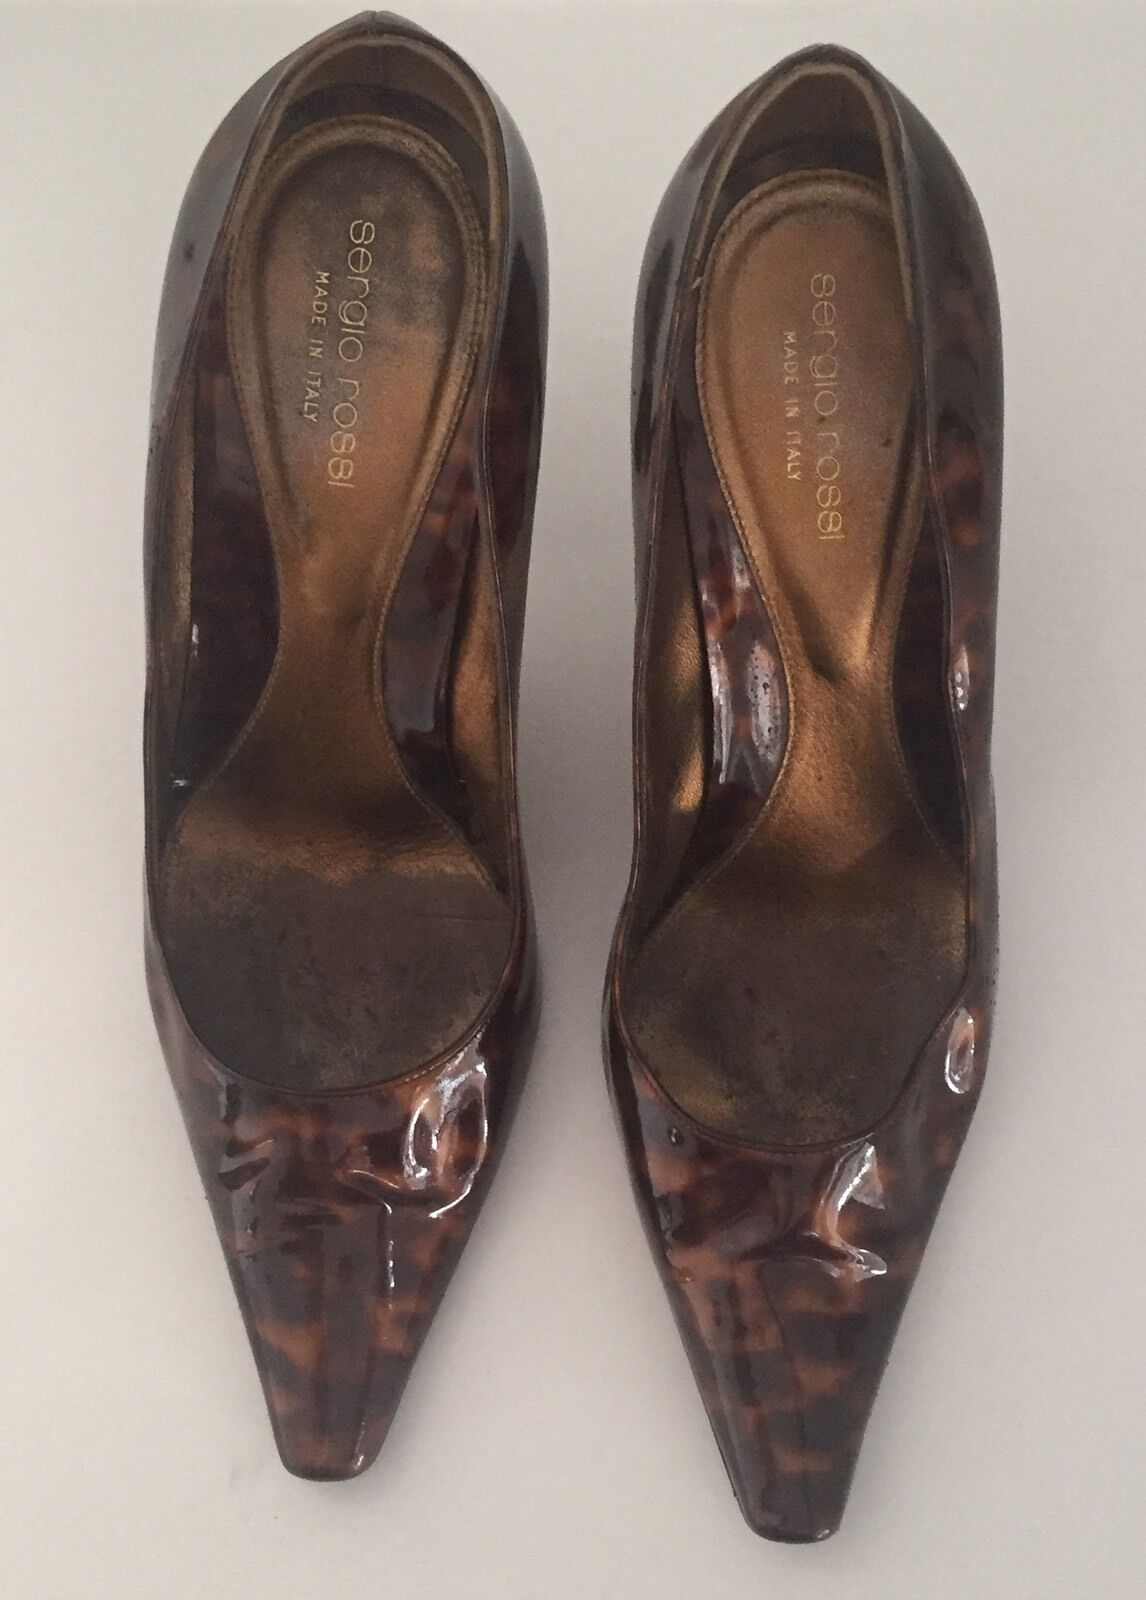 SERGIO ROSSI ANIMAL PRINT PATENT LEATHER CLASSIC HEEL PUMP SZ 38.5 EXCELLENT